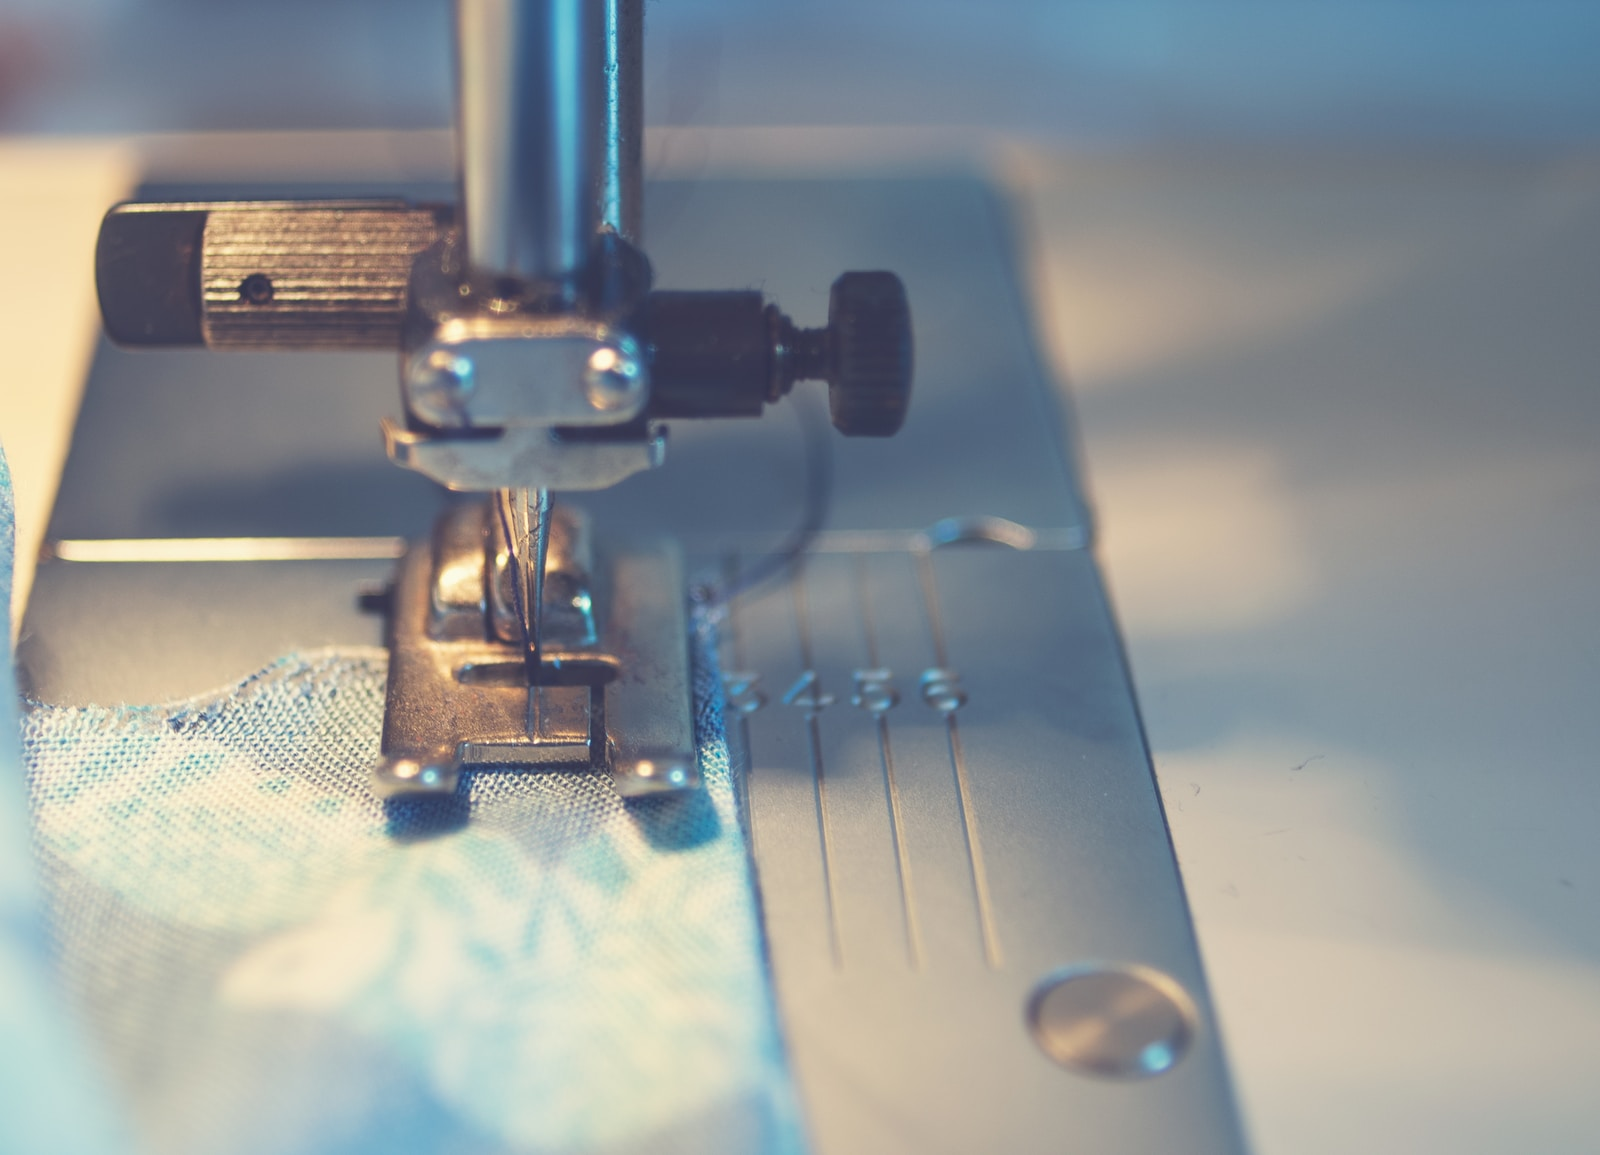 blue textile under a sewing machine needle